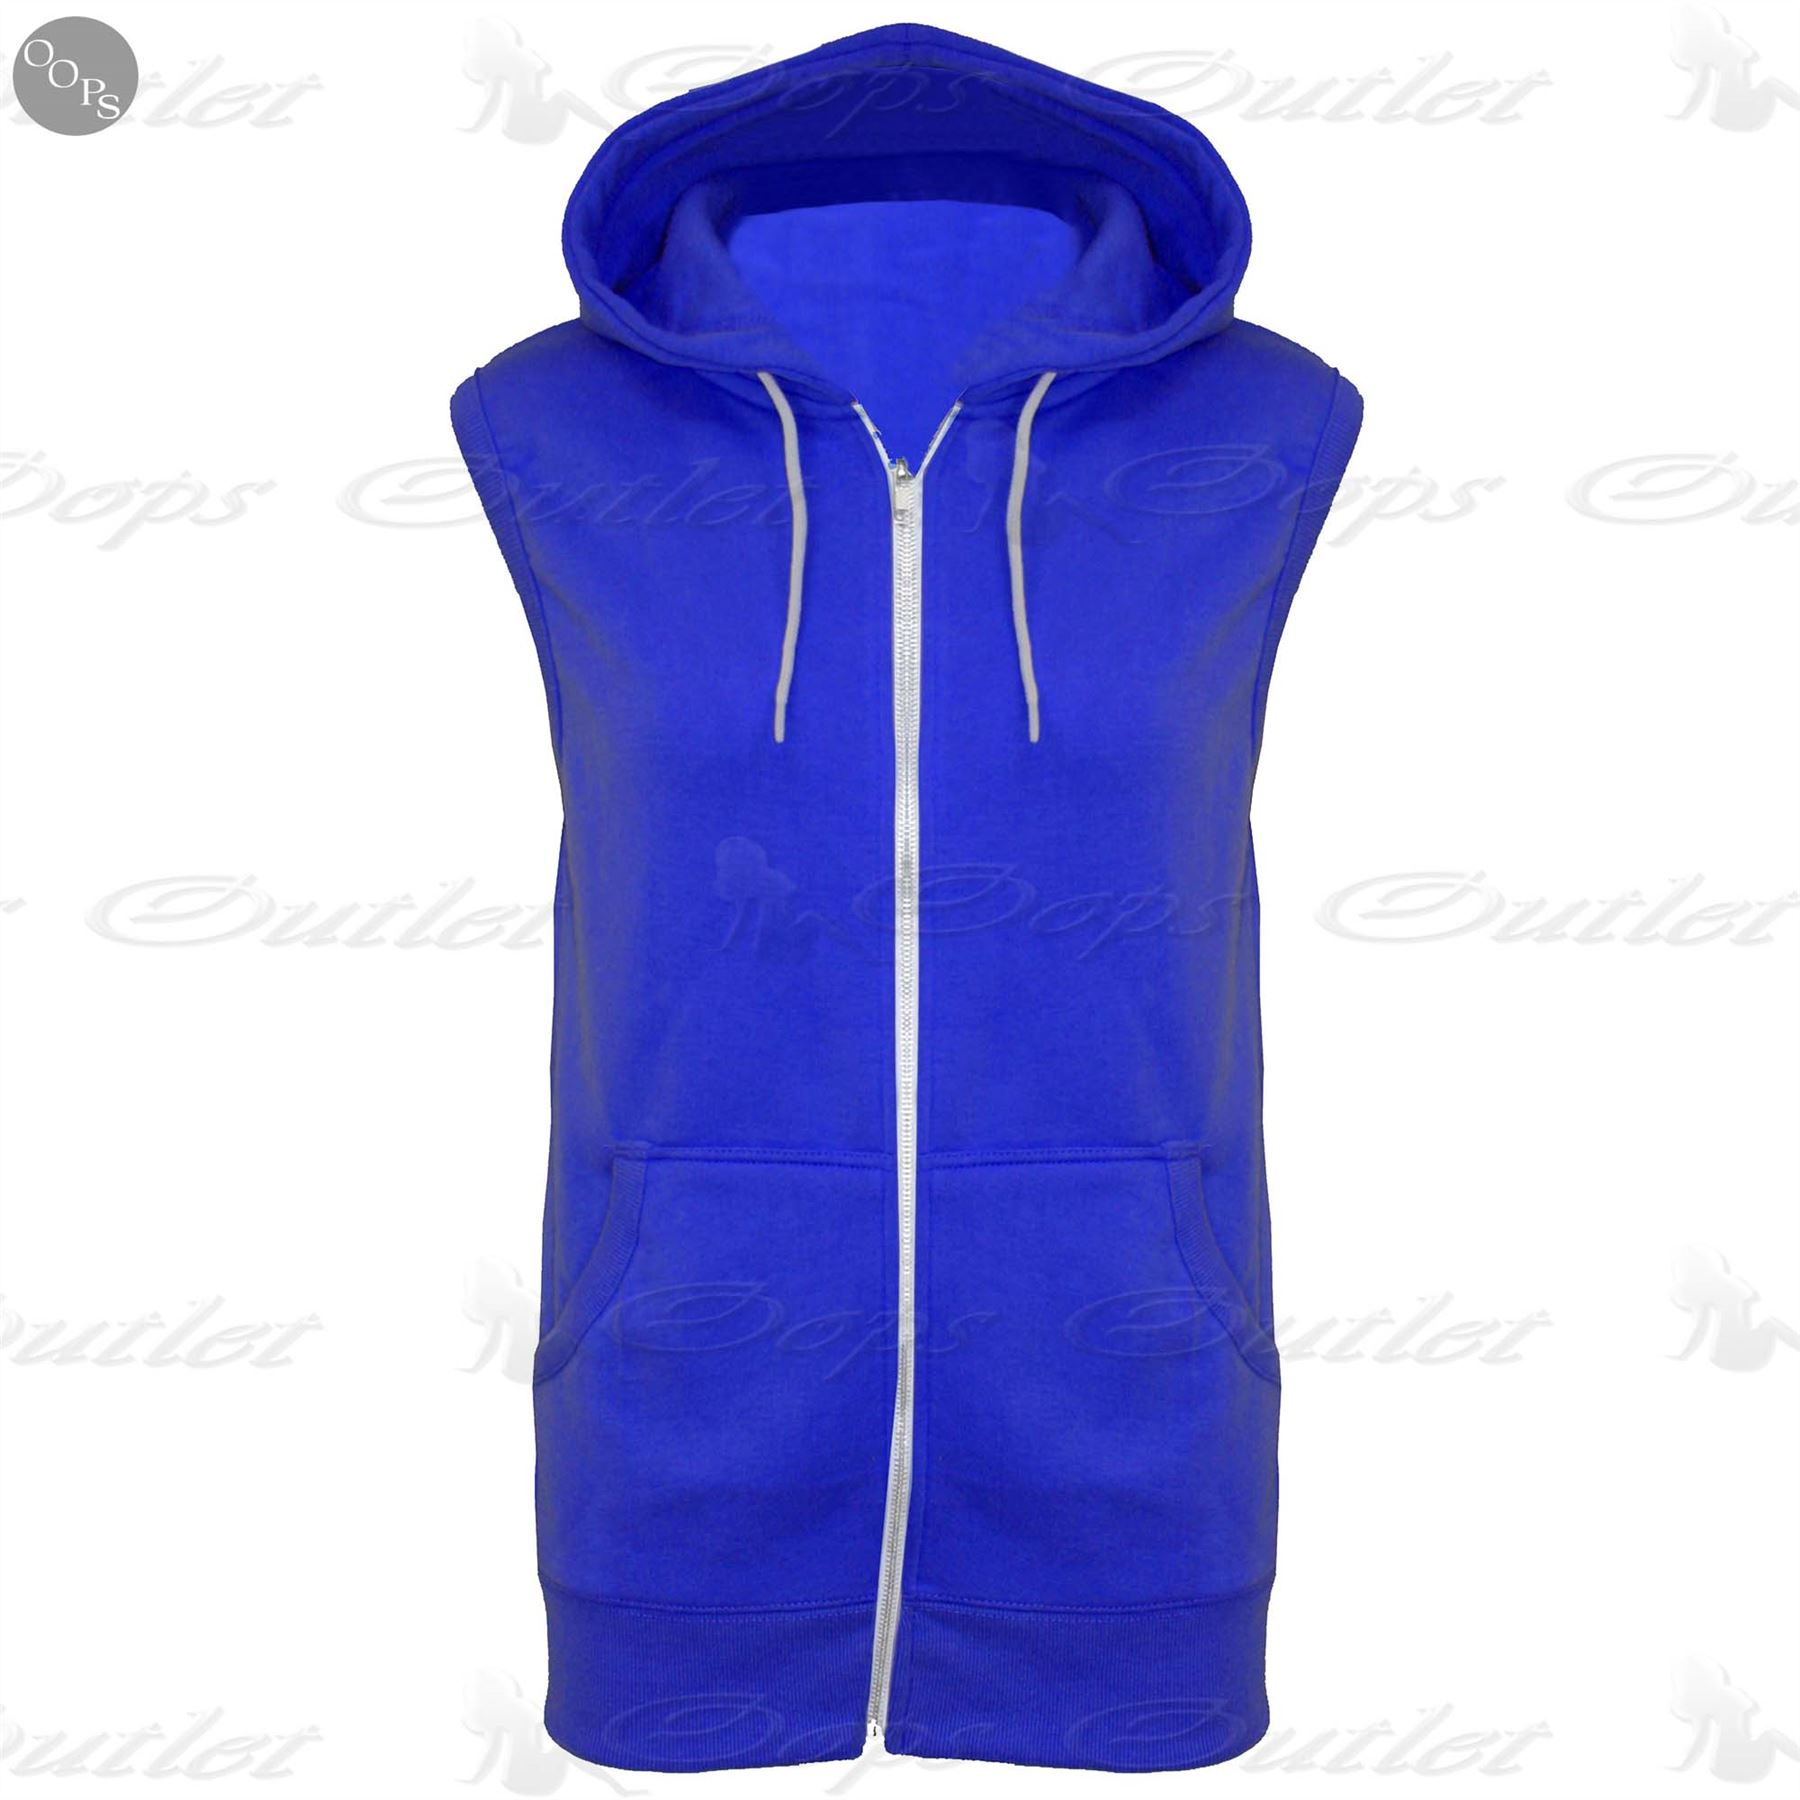 Kids Sleeveless Hooded Hoodie Casual Zipper Sweatshirt Gilet ...